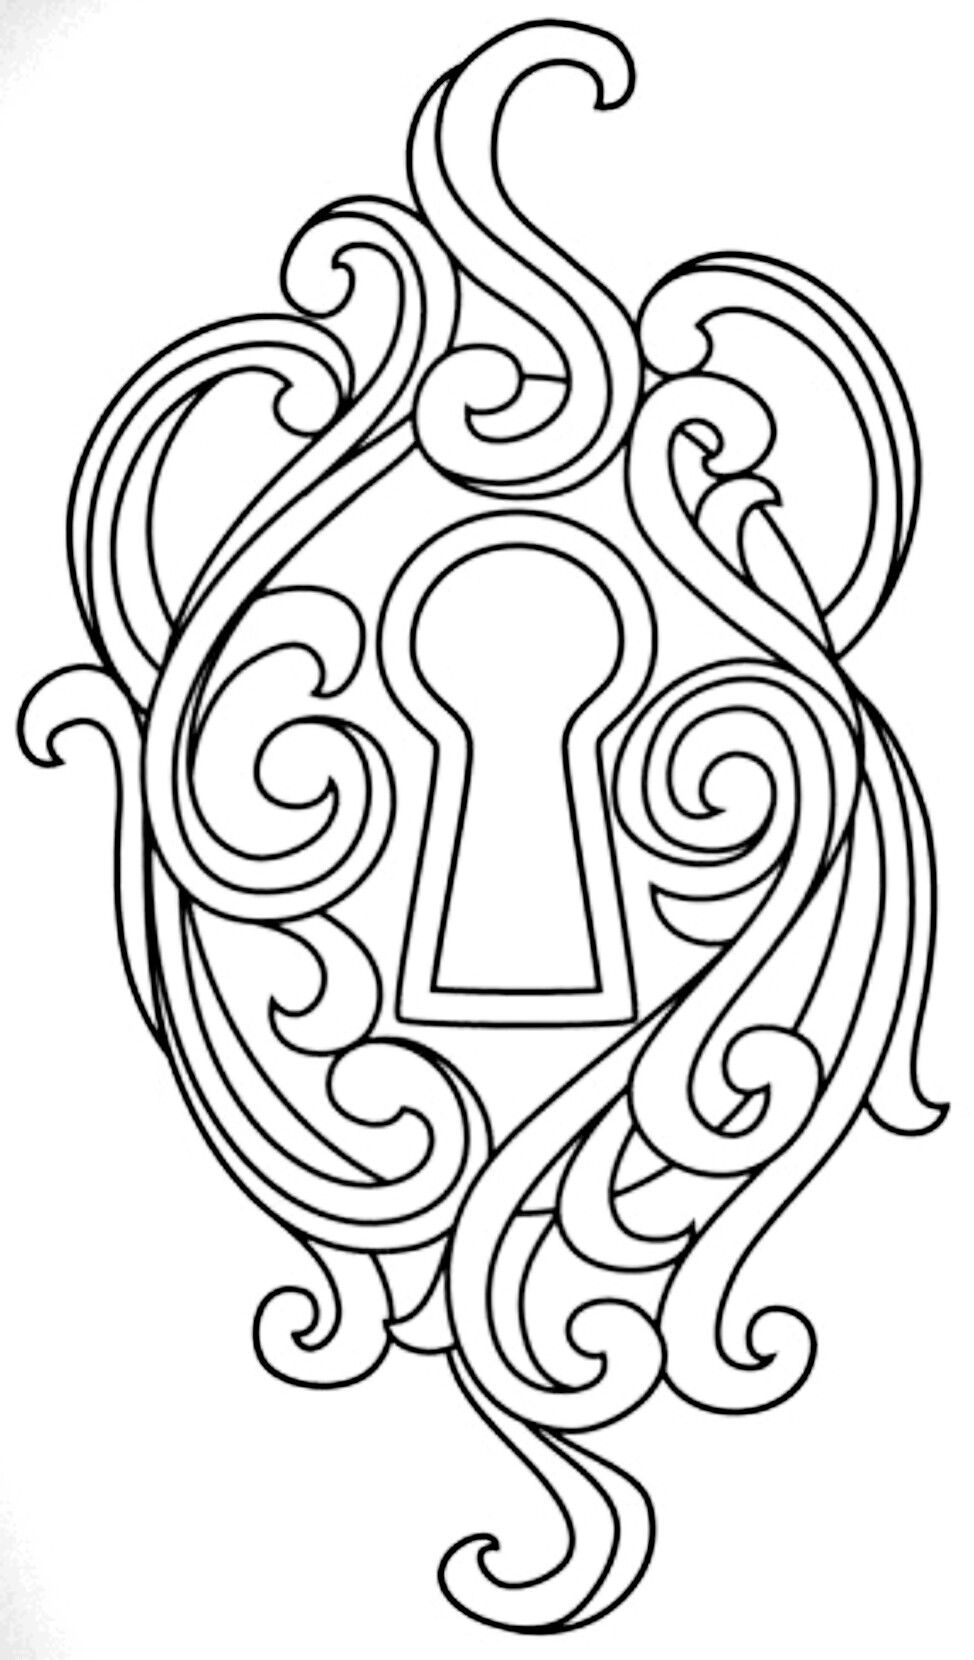 Key Lock Coloring Pages Embroidery Patterns Embroidery Designs